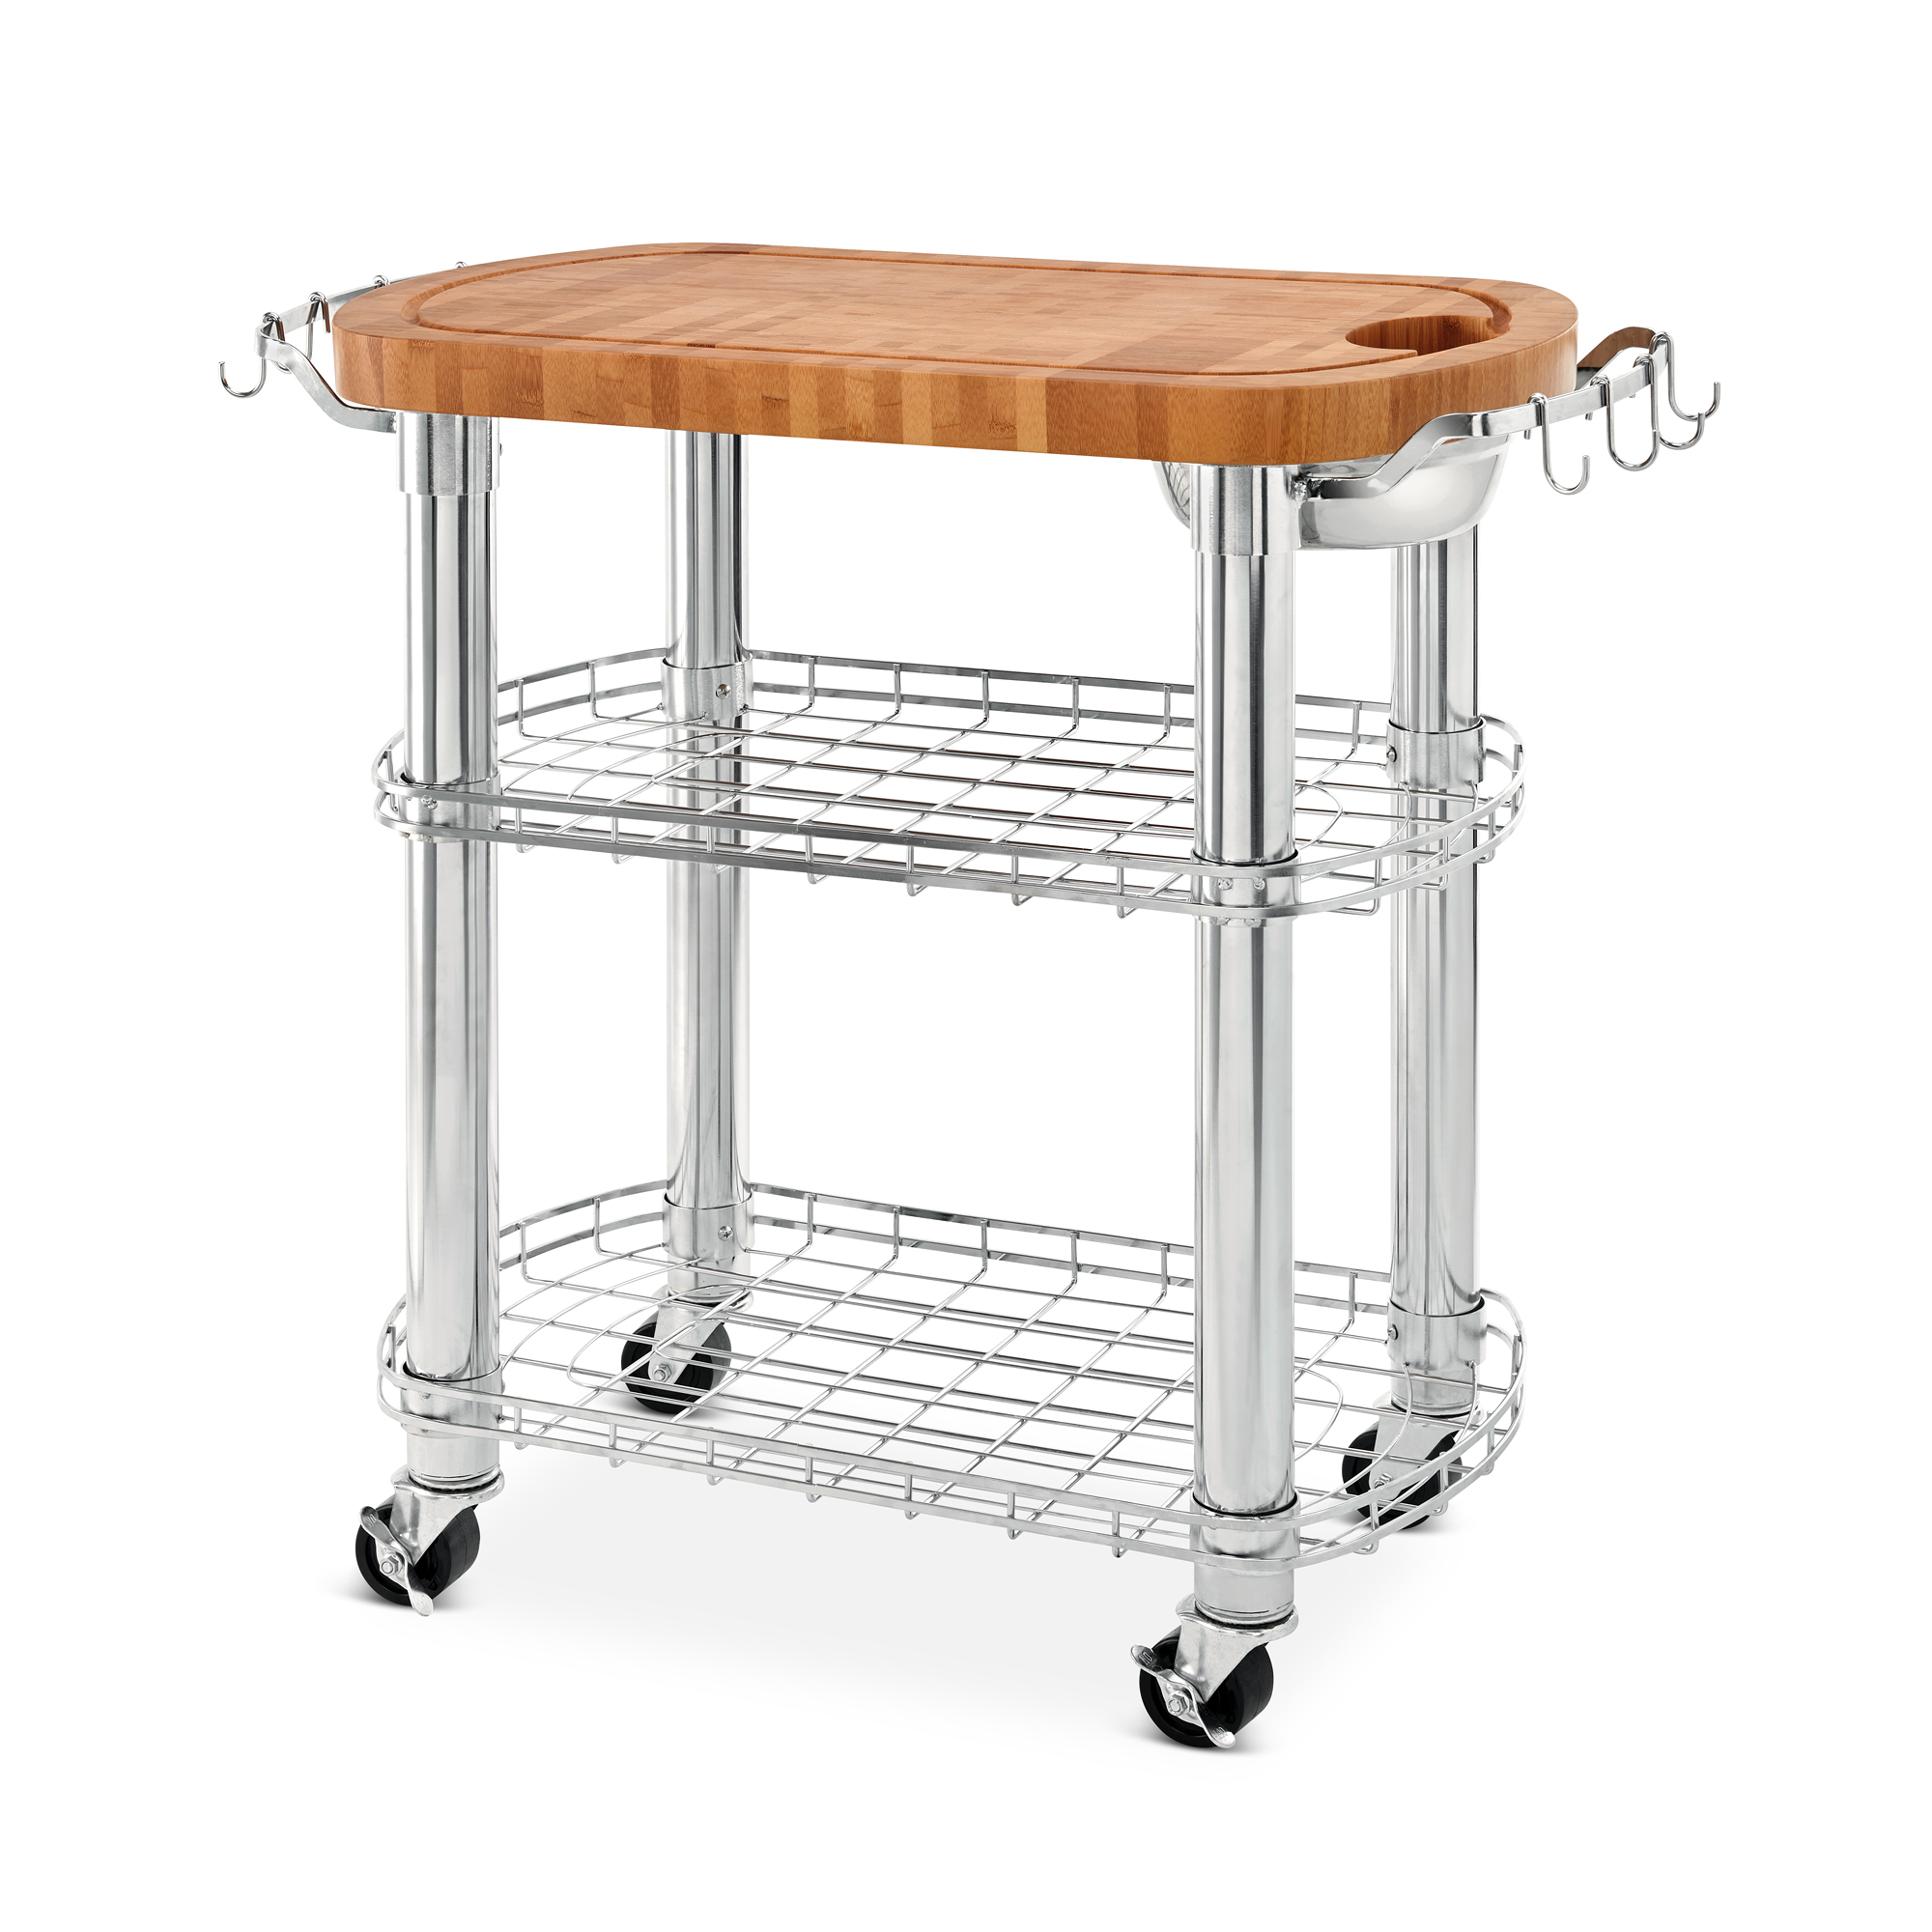 Butcher Block Rolling Kitchen Island : Seville Classics Rolling Oval Solid-Bamboo Butcher Block Top Kitchen Island Cart with Storage ...